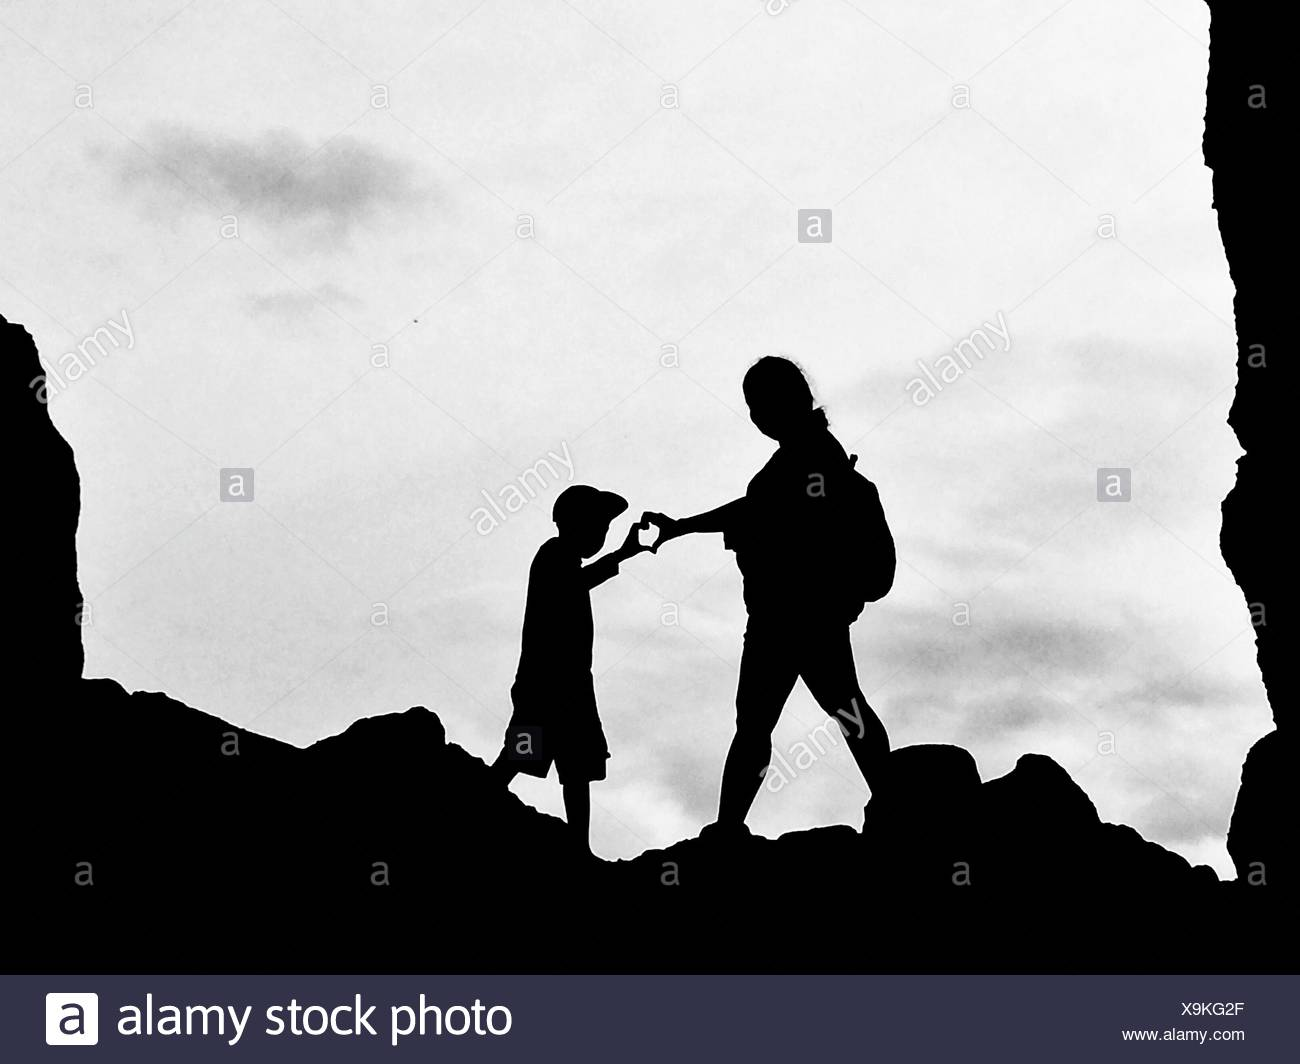 Low Angle View Of Silhouette Mother And Son Making Heart Shape With Hand - Stock Image